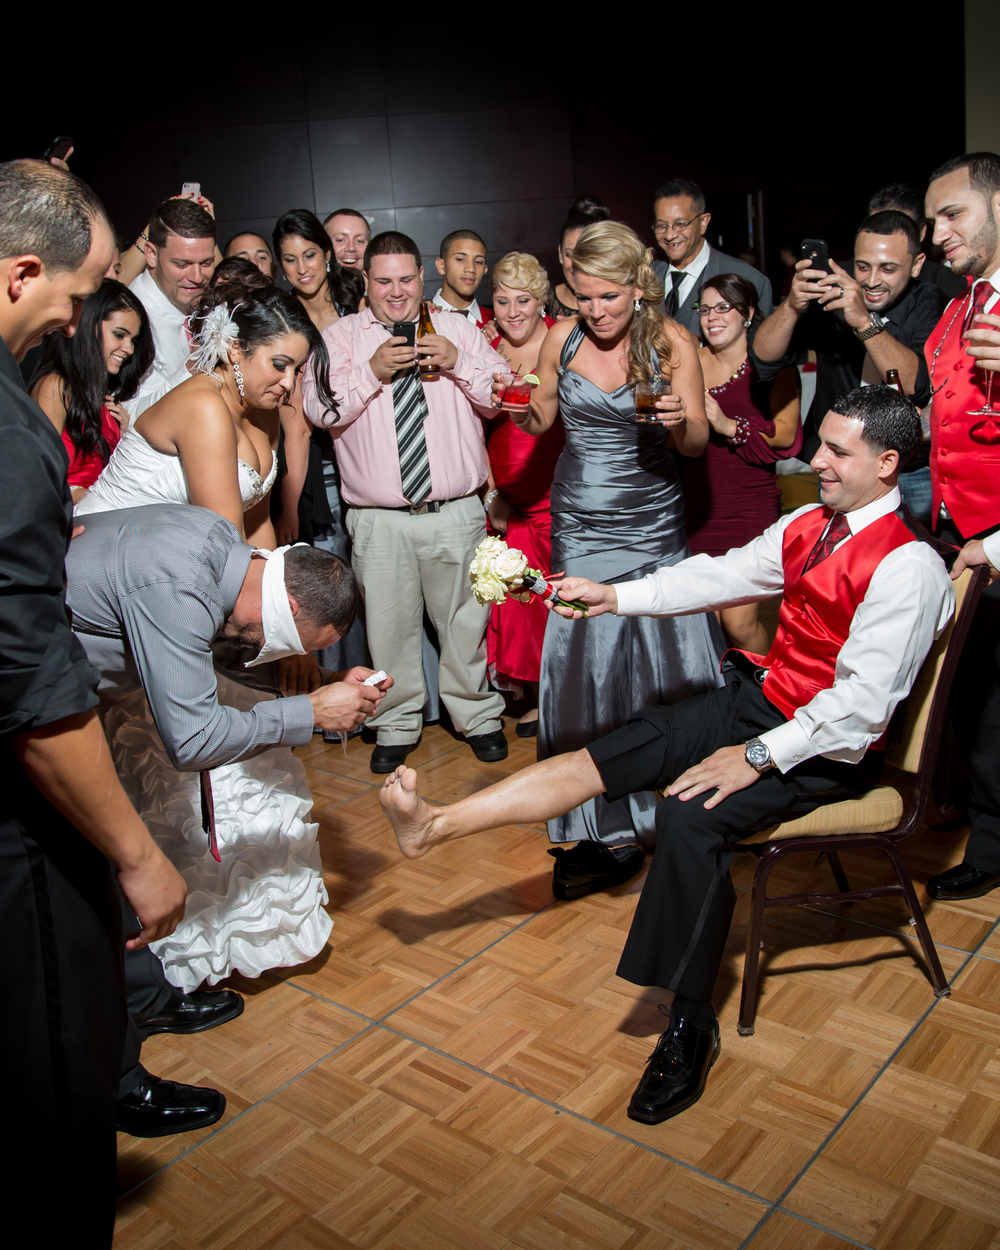 Orlando Wedding-Brazen Photo-Lopez-33.jpg